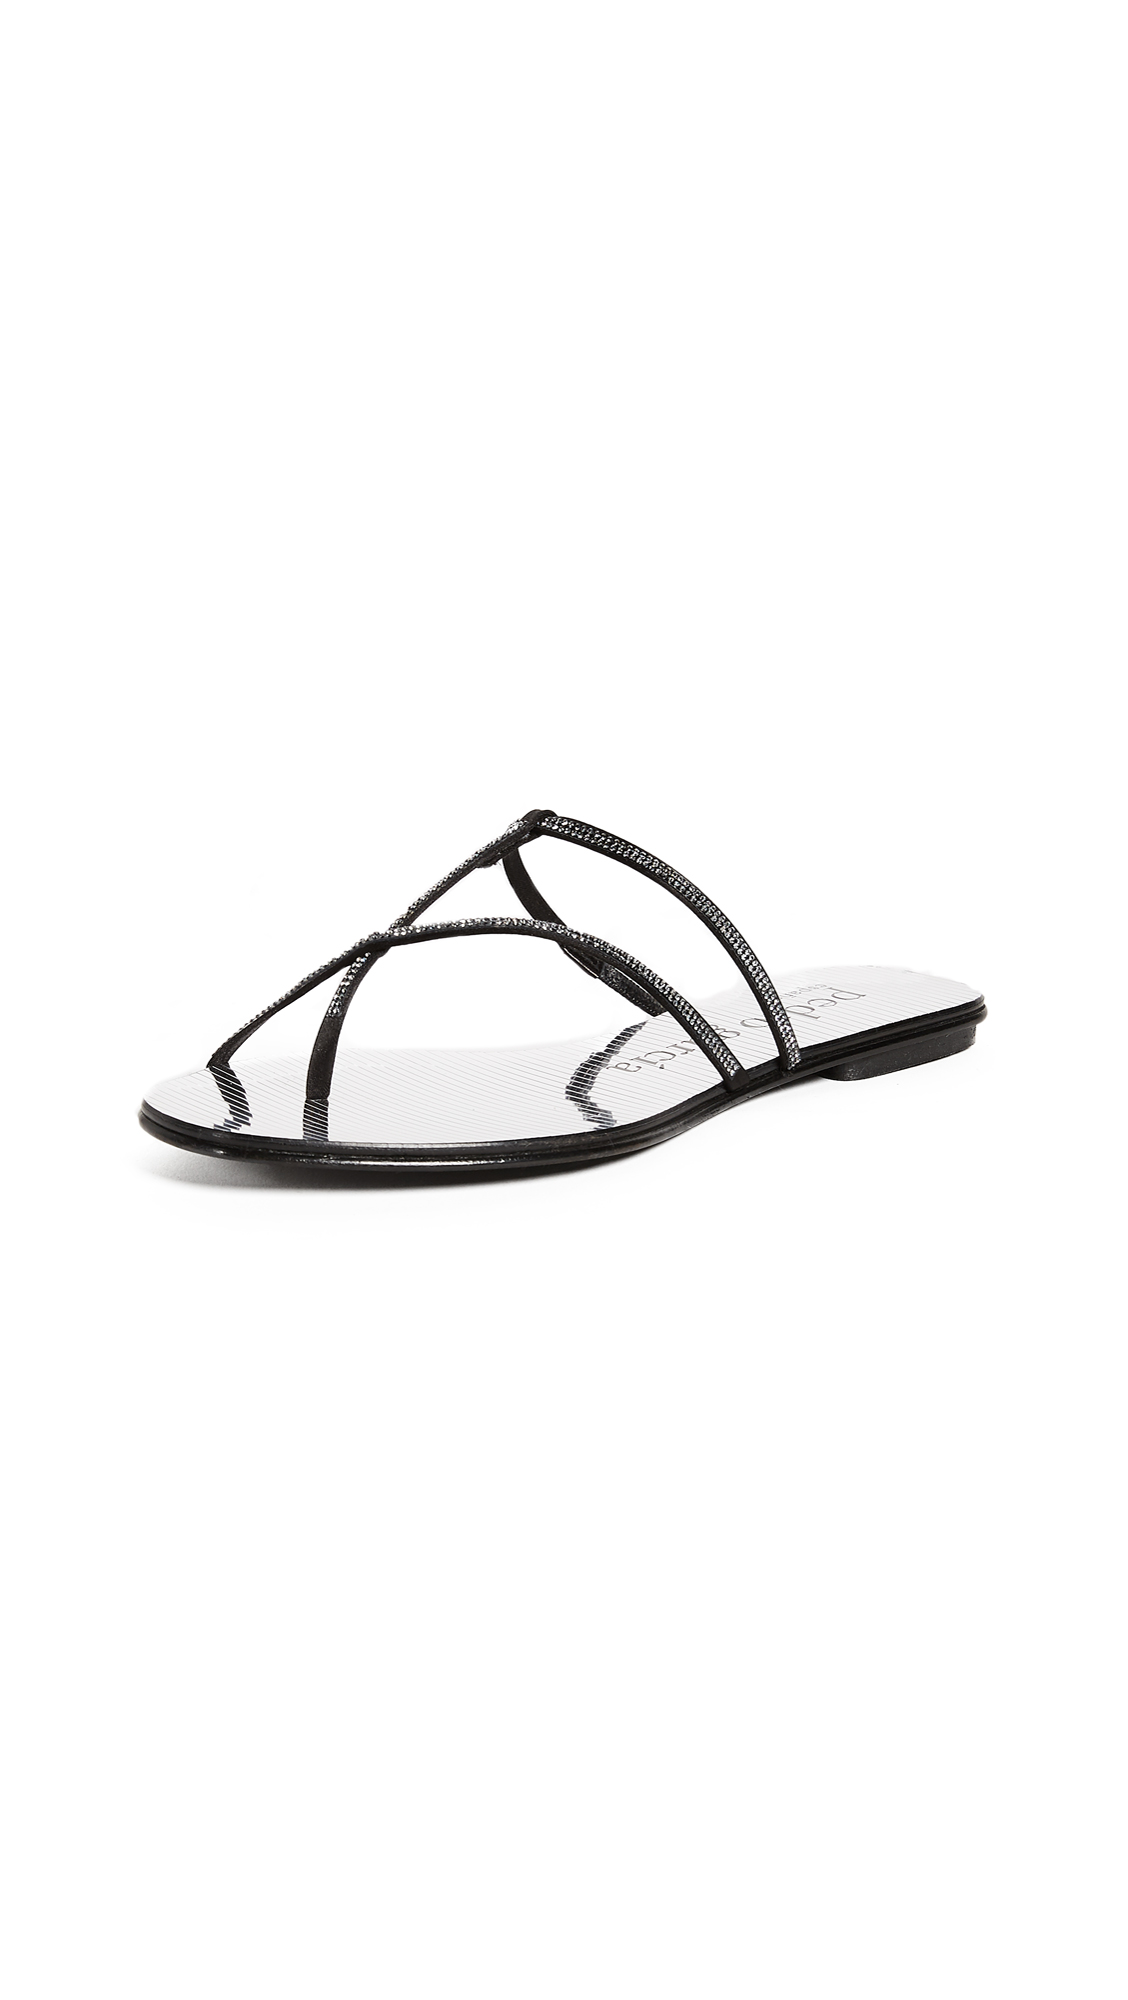 Pedro Garcia Estee Thong Sandals - Black